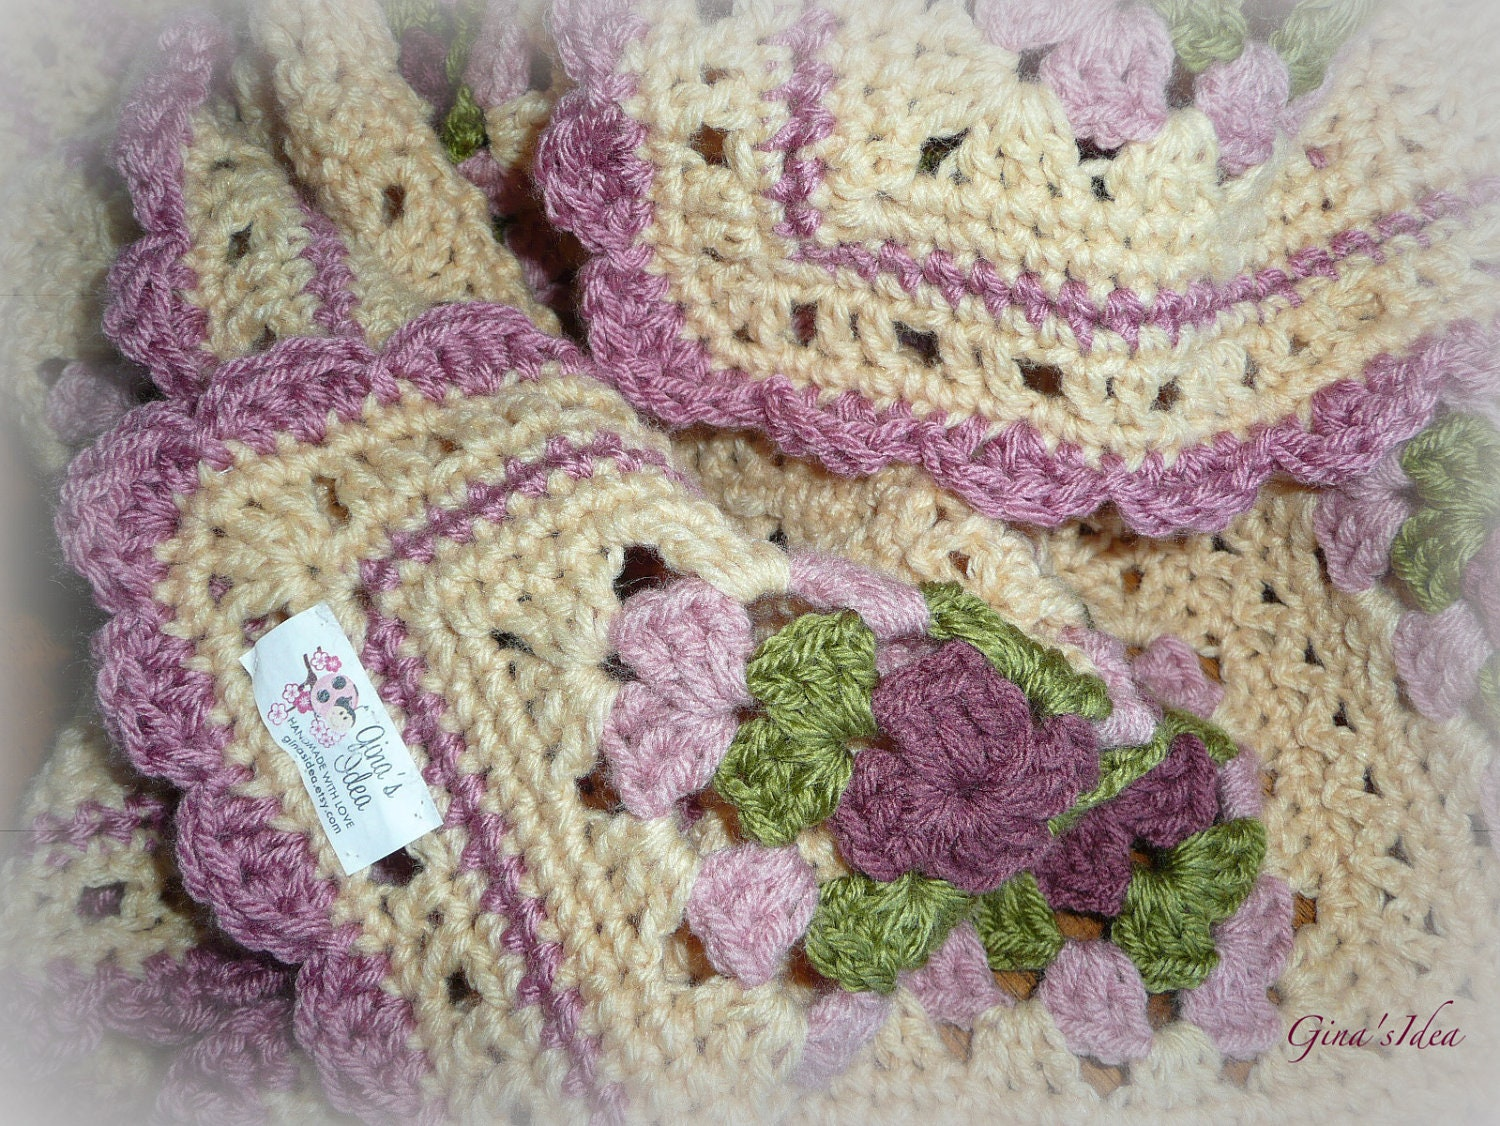 Crocheted Soft Baby Girl Blanket Afghan Granny By Ginasidea